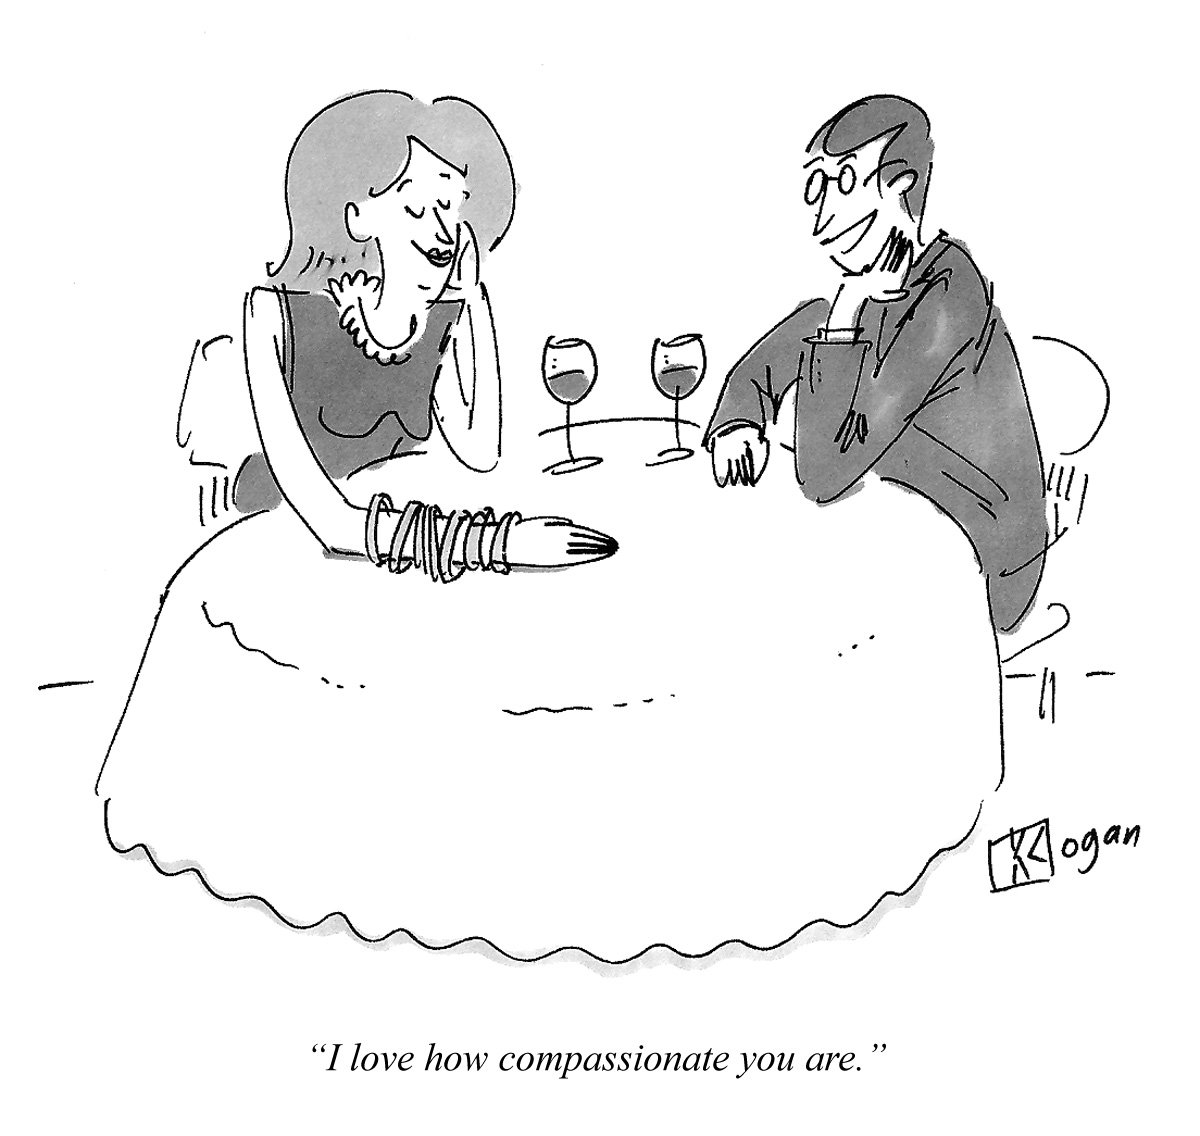 I love how compassionate you are.